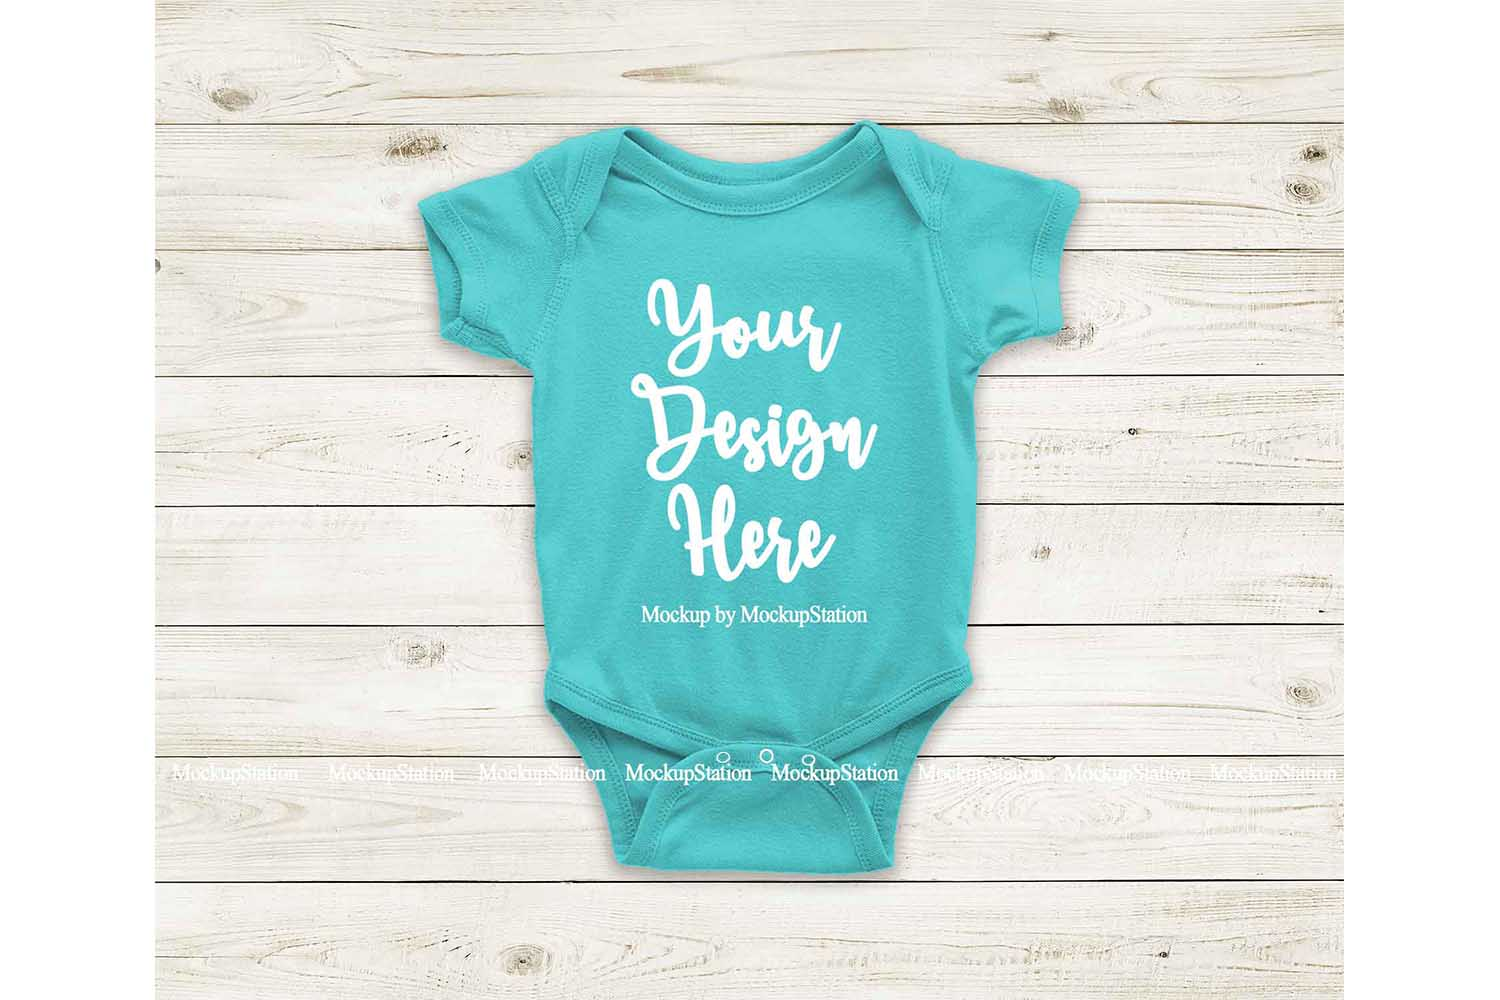 Carribean Blue Blank Baby Bodysuit Mockup, Newborn One Piece example image 1